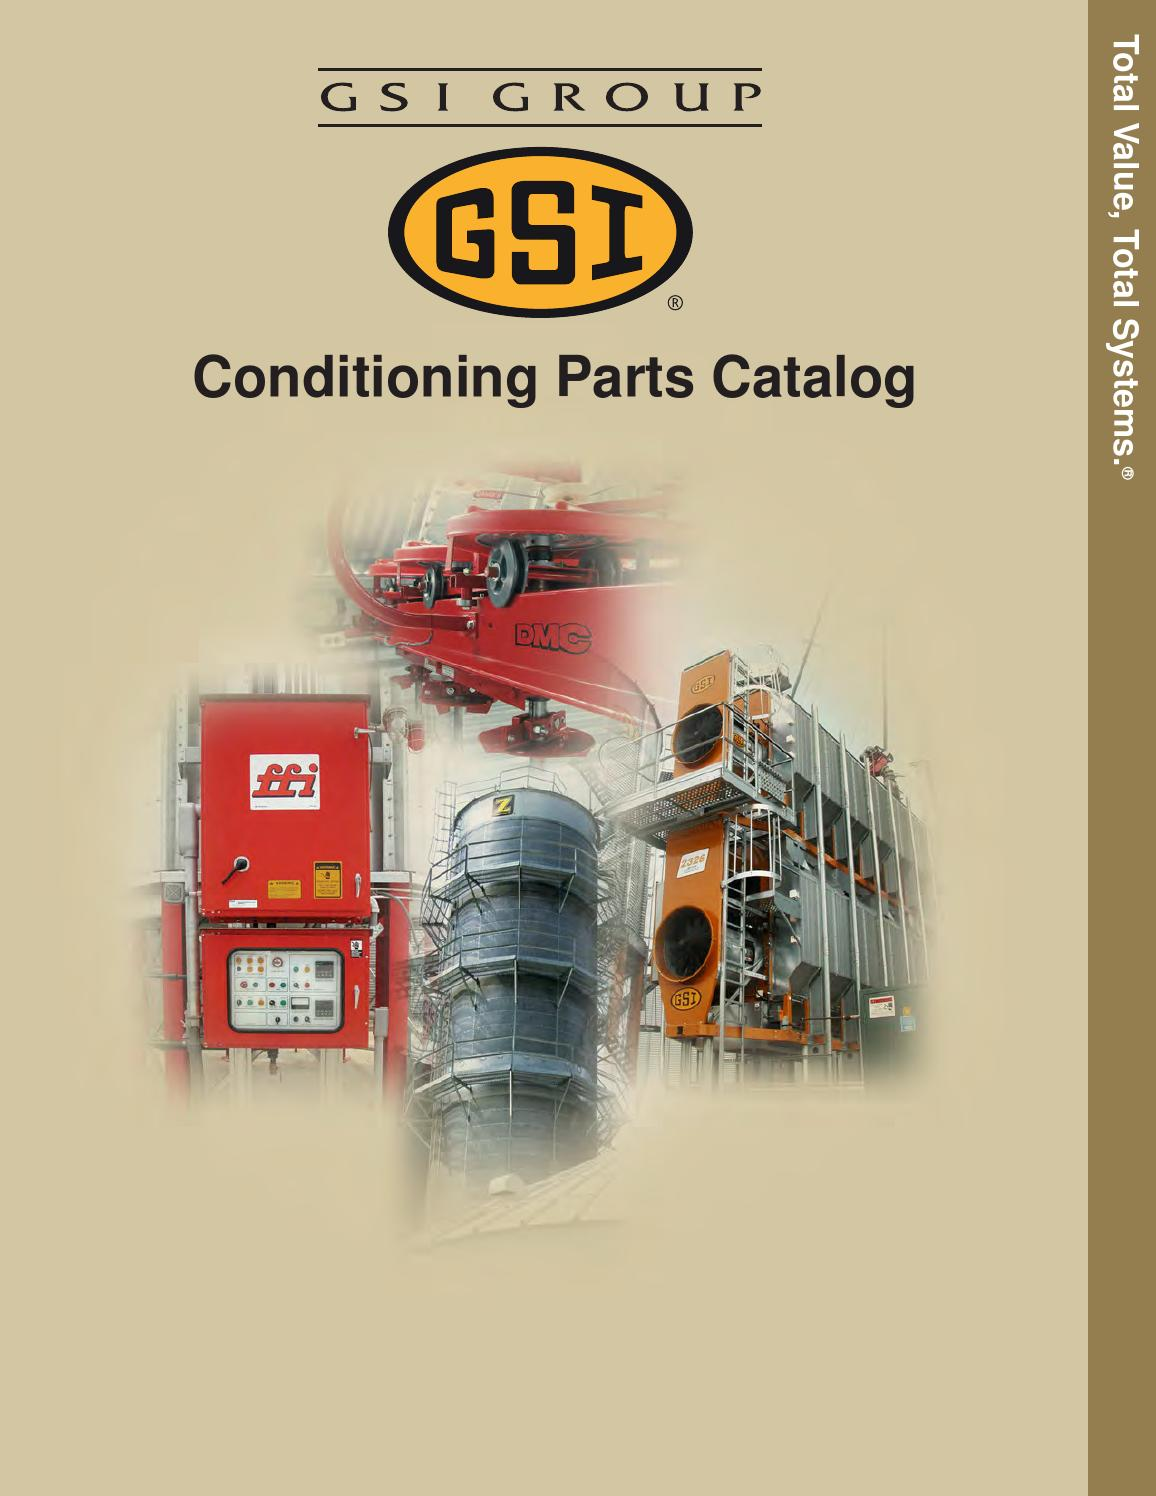 GSI Conditioning Parts Catalog by Stutsmans - issuu on